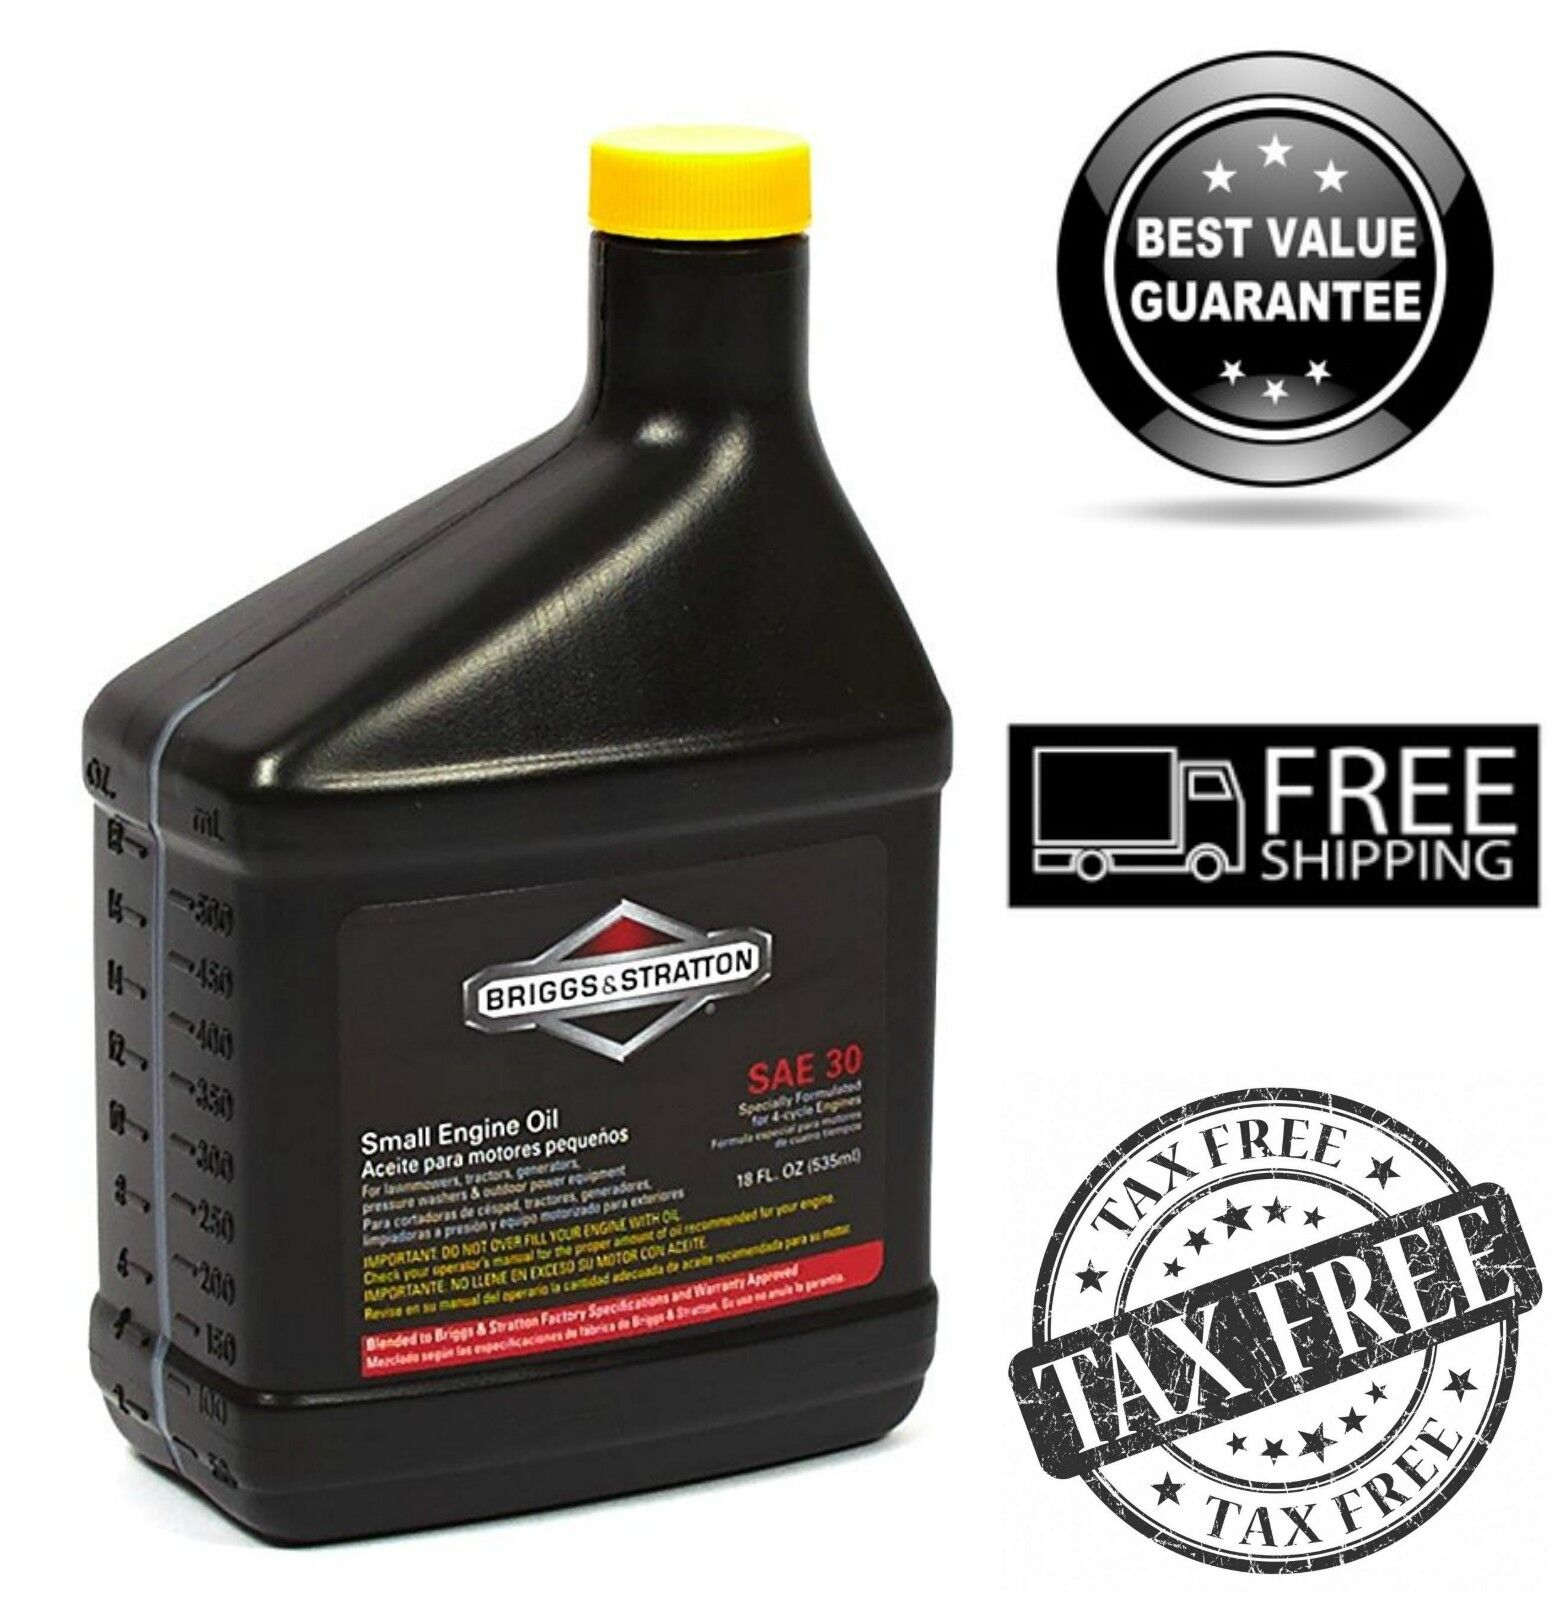 Briggs & Stratton SAE 30W Lawn Mowers Engine Oil for Higher